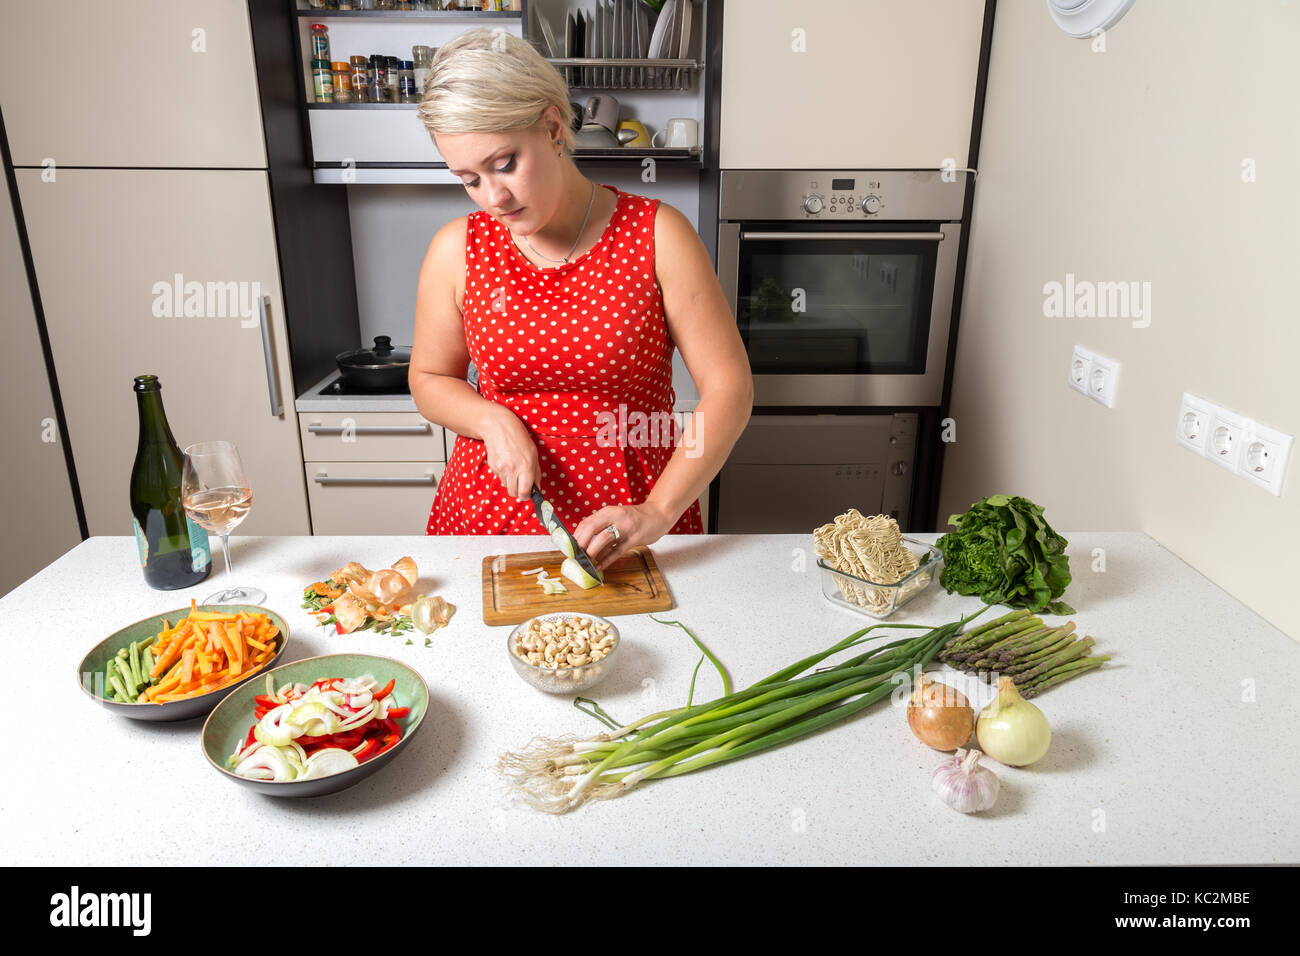 Girl cutting onions in red dotted dress - Stock Image